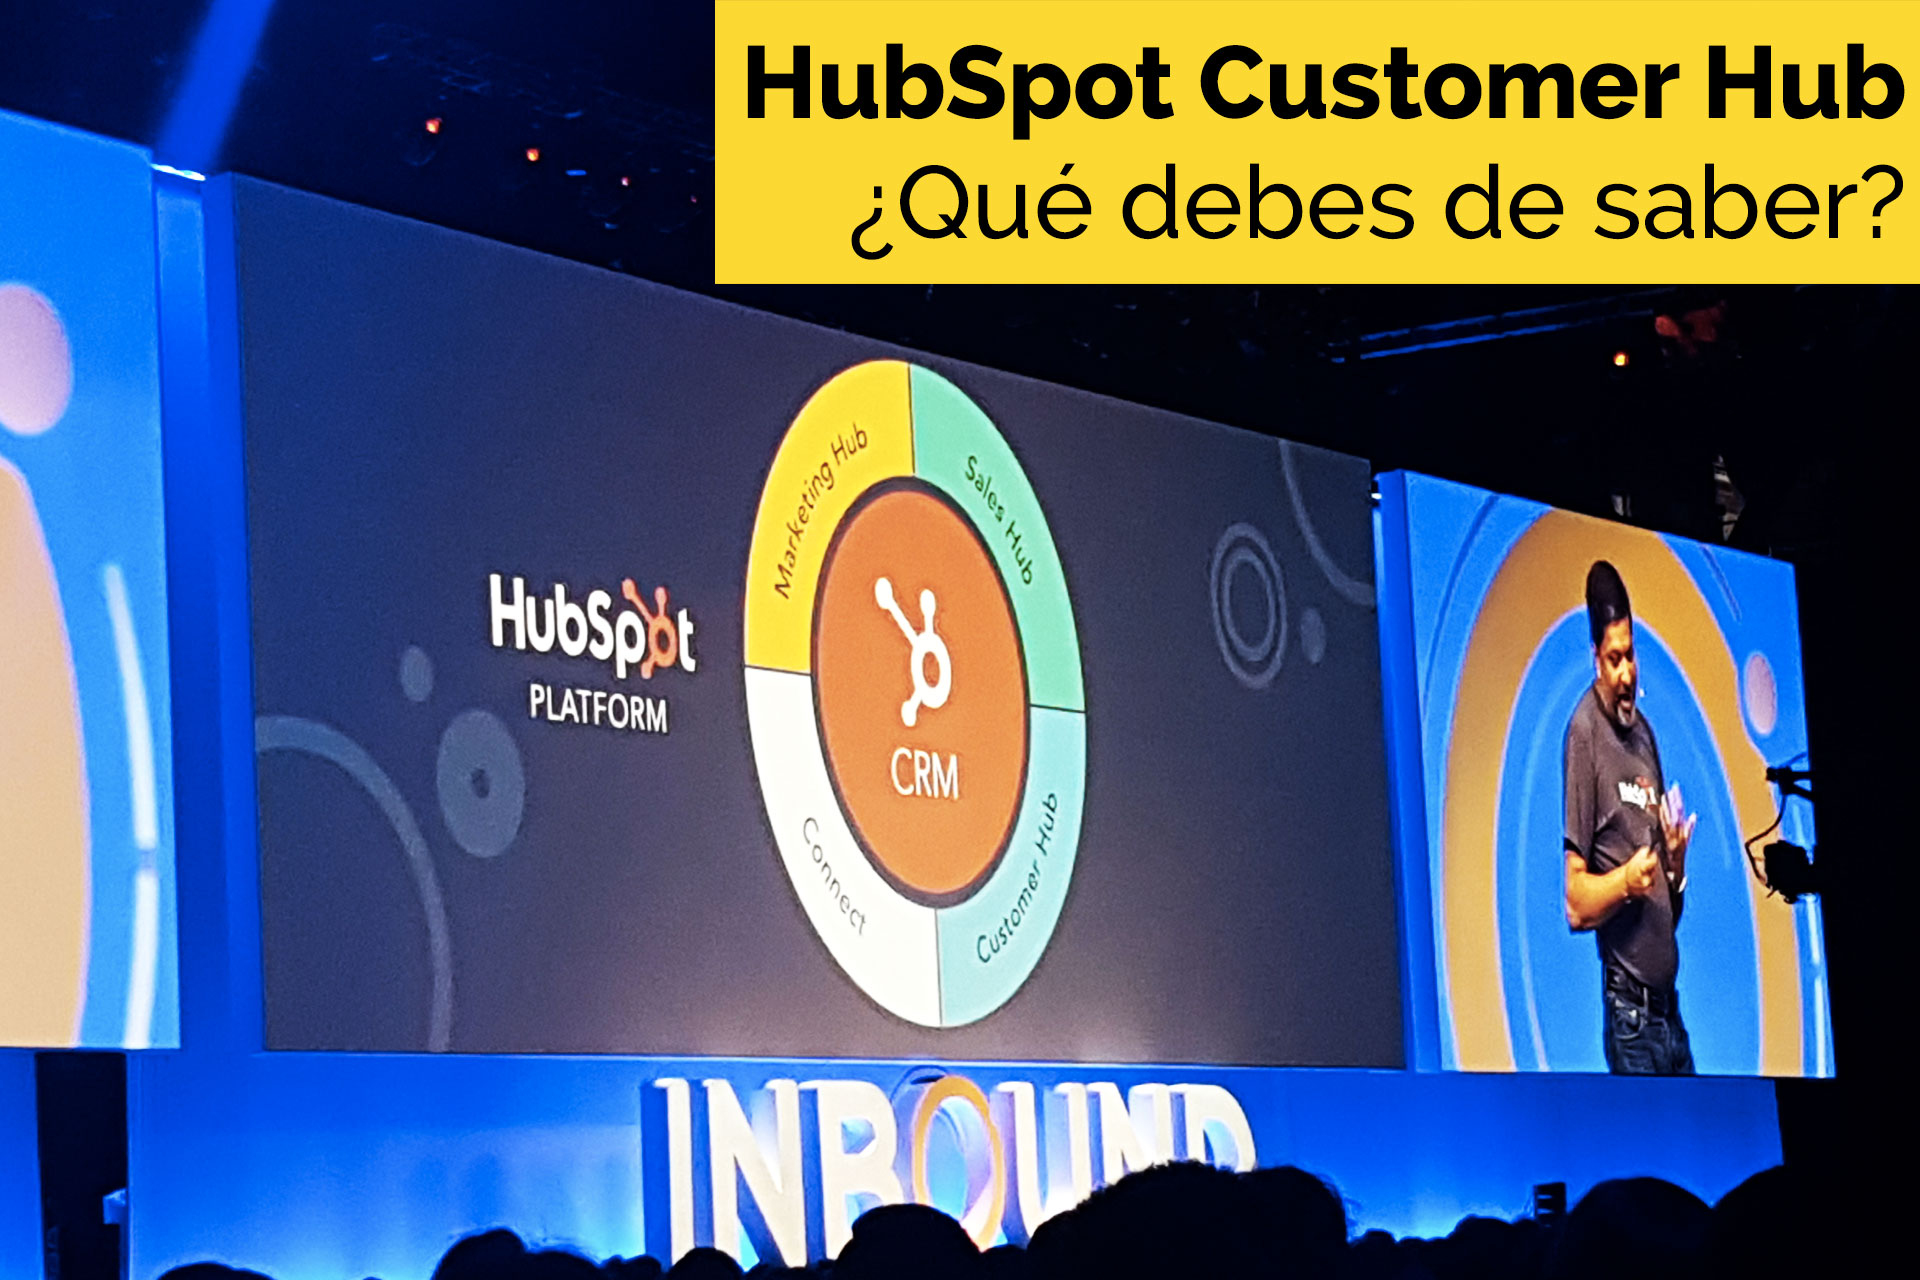 Marketing Digital: HubSpot Customer Hub, todo lo que debes saber